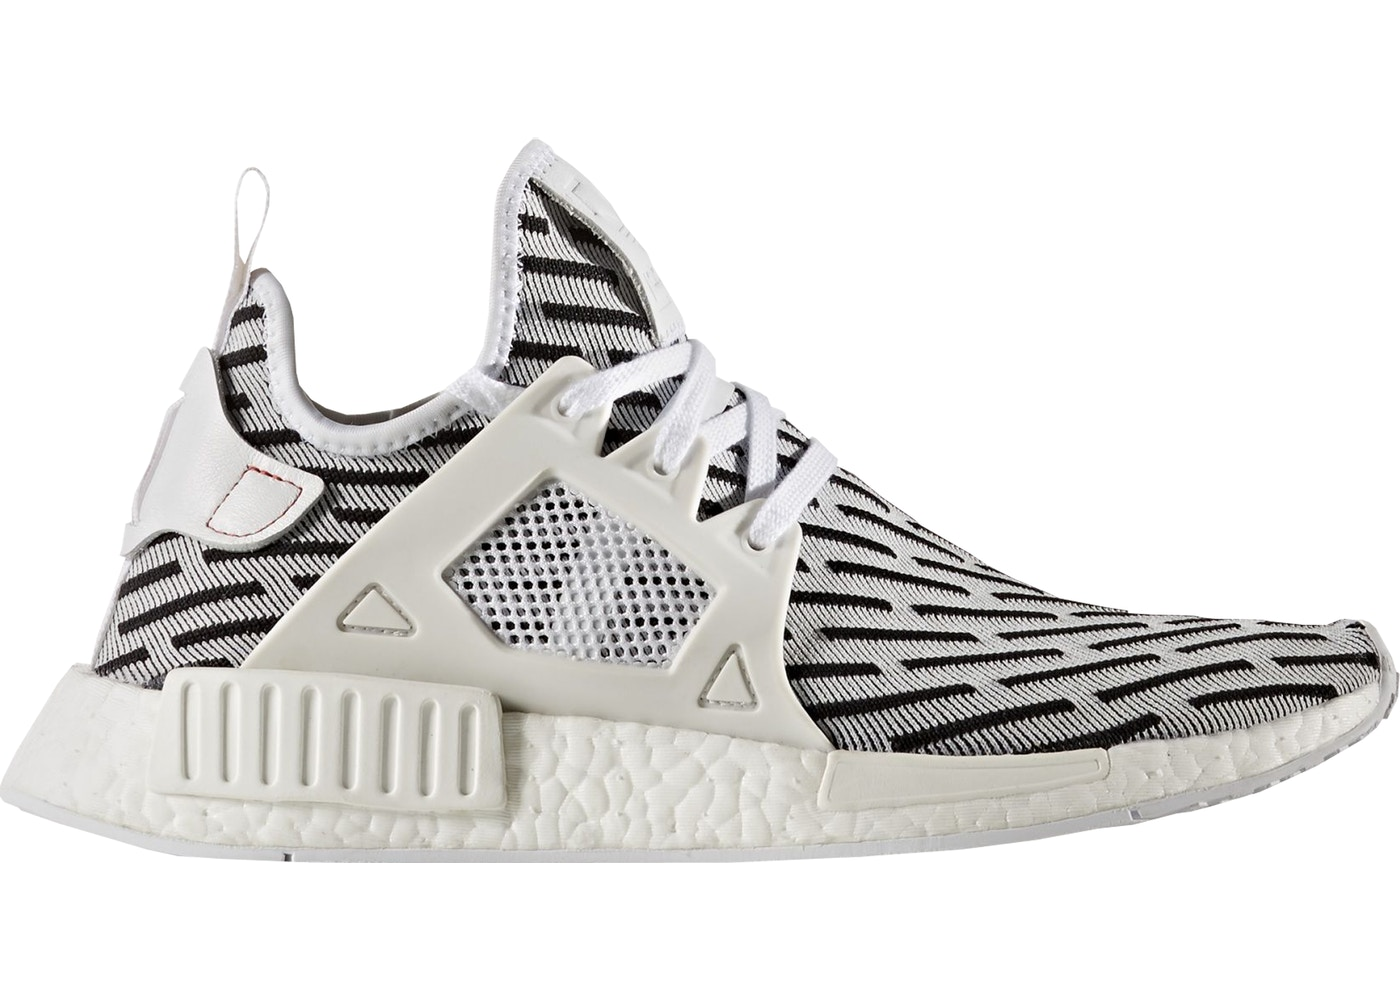 reputable site a08cf a0fd9 Buy adidas NMD XR1 Shoes & Deadstock Sneakers